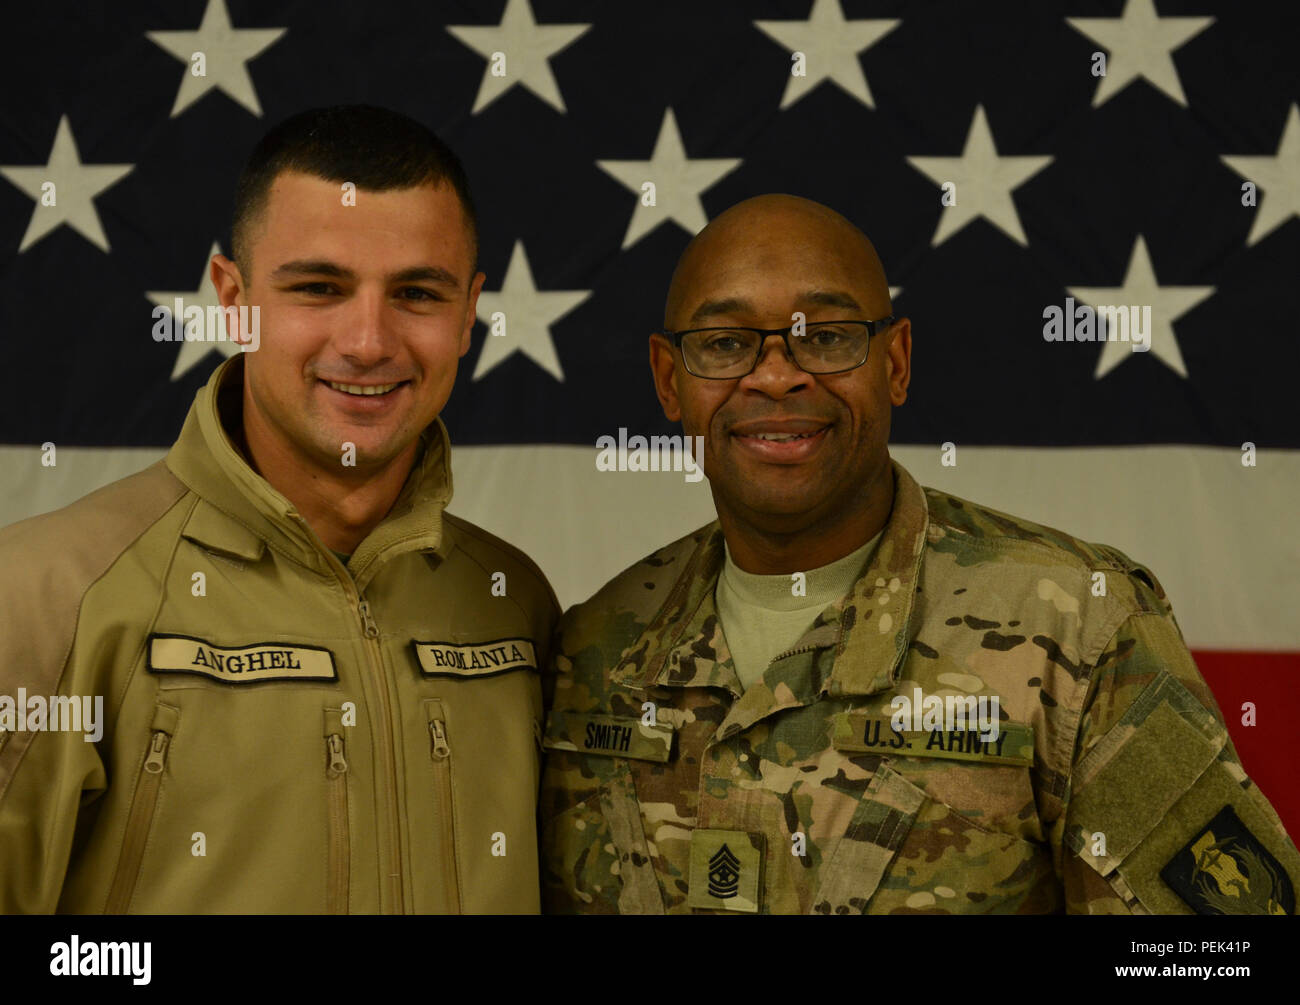 Newly promoted Sgt. Maj. Bryan Smith, the operations noncommissioned officer in charge of 149th Human Resource Texas Army National Guard, originally from Freeport, Texas, poses for a photo with his Romanian Army friend, Sgt. Laurentiu Anghel, during his promotion ceremony at Mihail Kogălniceanu Air Force Base, Romania, Dec. 10, 2015. (U.S. Army Photo by Staff Sgt. Steven M. Colvin/Released) - Stock Image